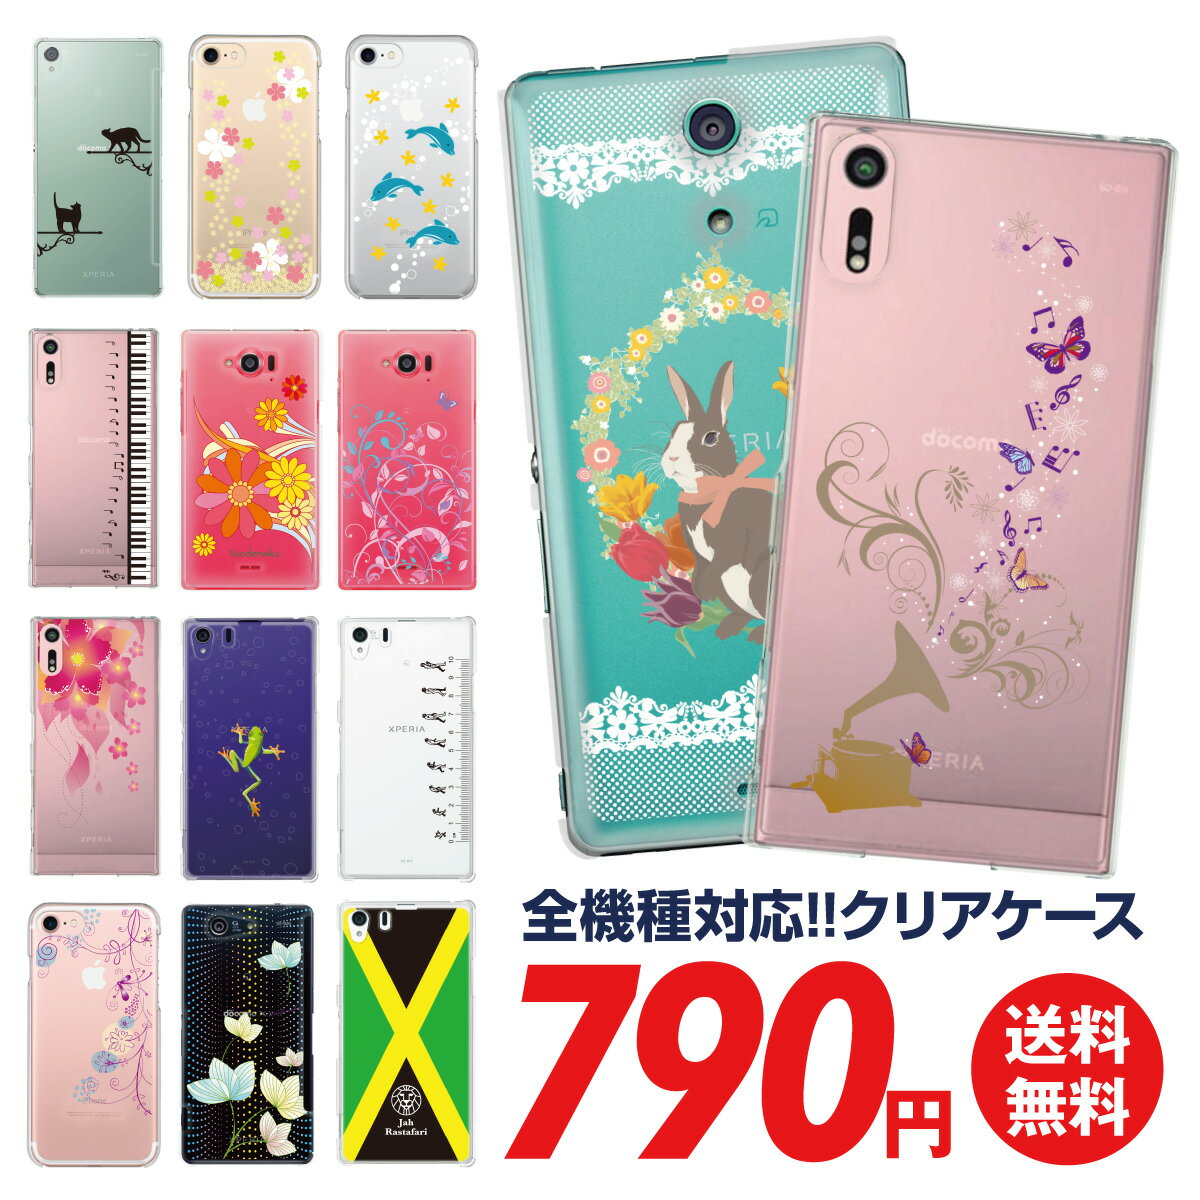 スマホケース 全機種対応 ケース カバー ハードケース クリアケース iPhoneXS Max iPhoneXR iPhoneX iPhone8 Plus iPhone7 iPhone6s iPhone6 Plus iPhone SE 5s Xperia XZ2 XZ1 XZ XZs SO-05K SO-03K aquos R2 R SH-03K SHV42 galaxy S9 S8 sa04